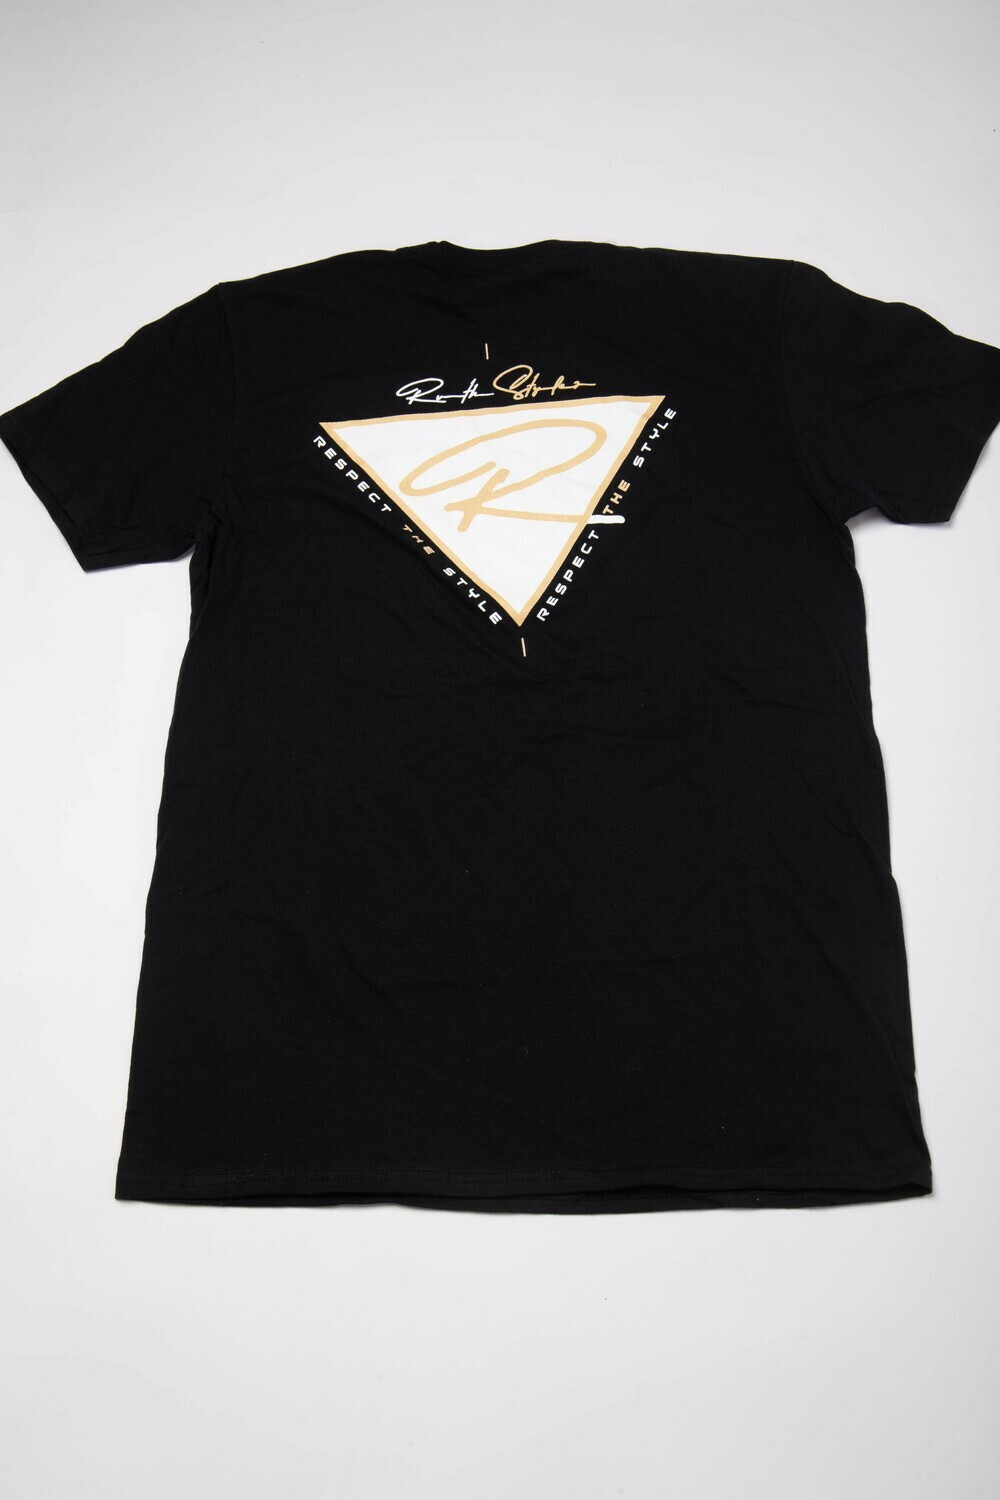 """White and Tan Crew Neck """"Respect the Style"""" Back Logo T-Shirt!"""